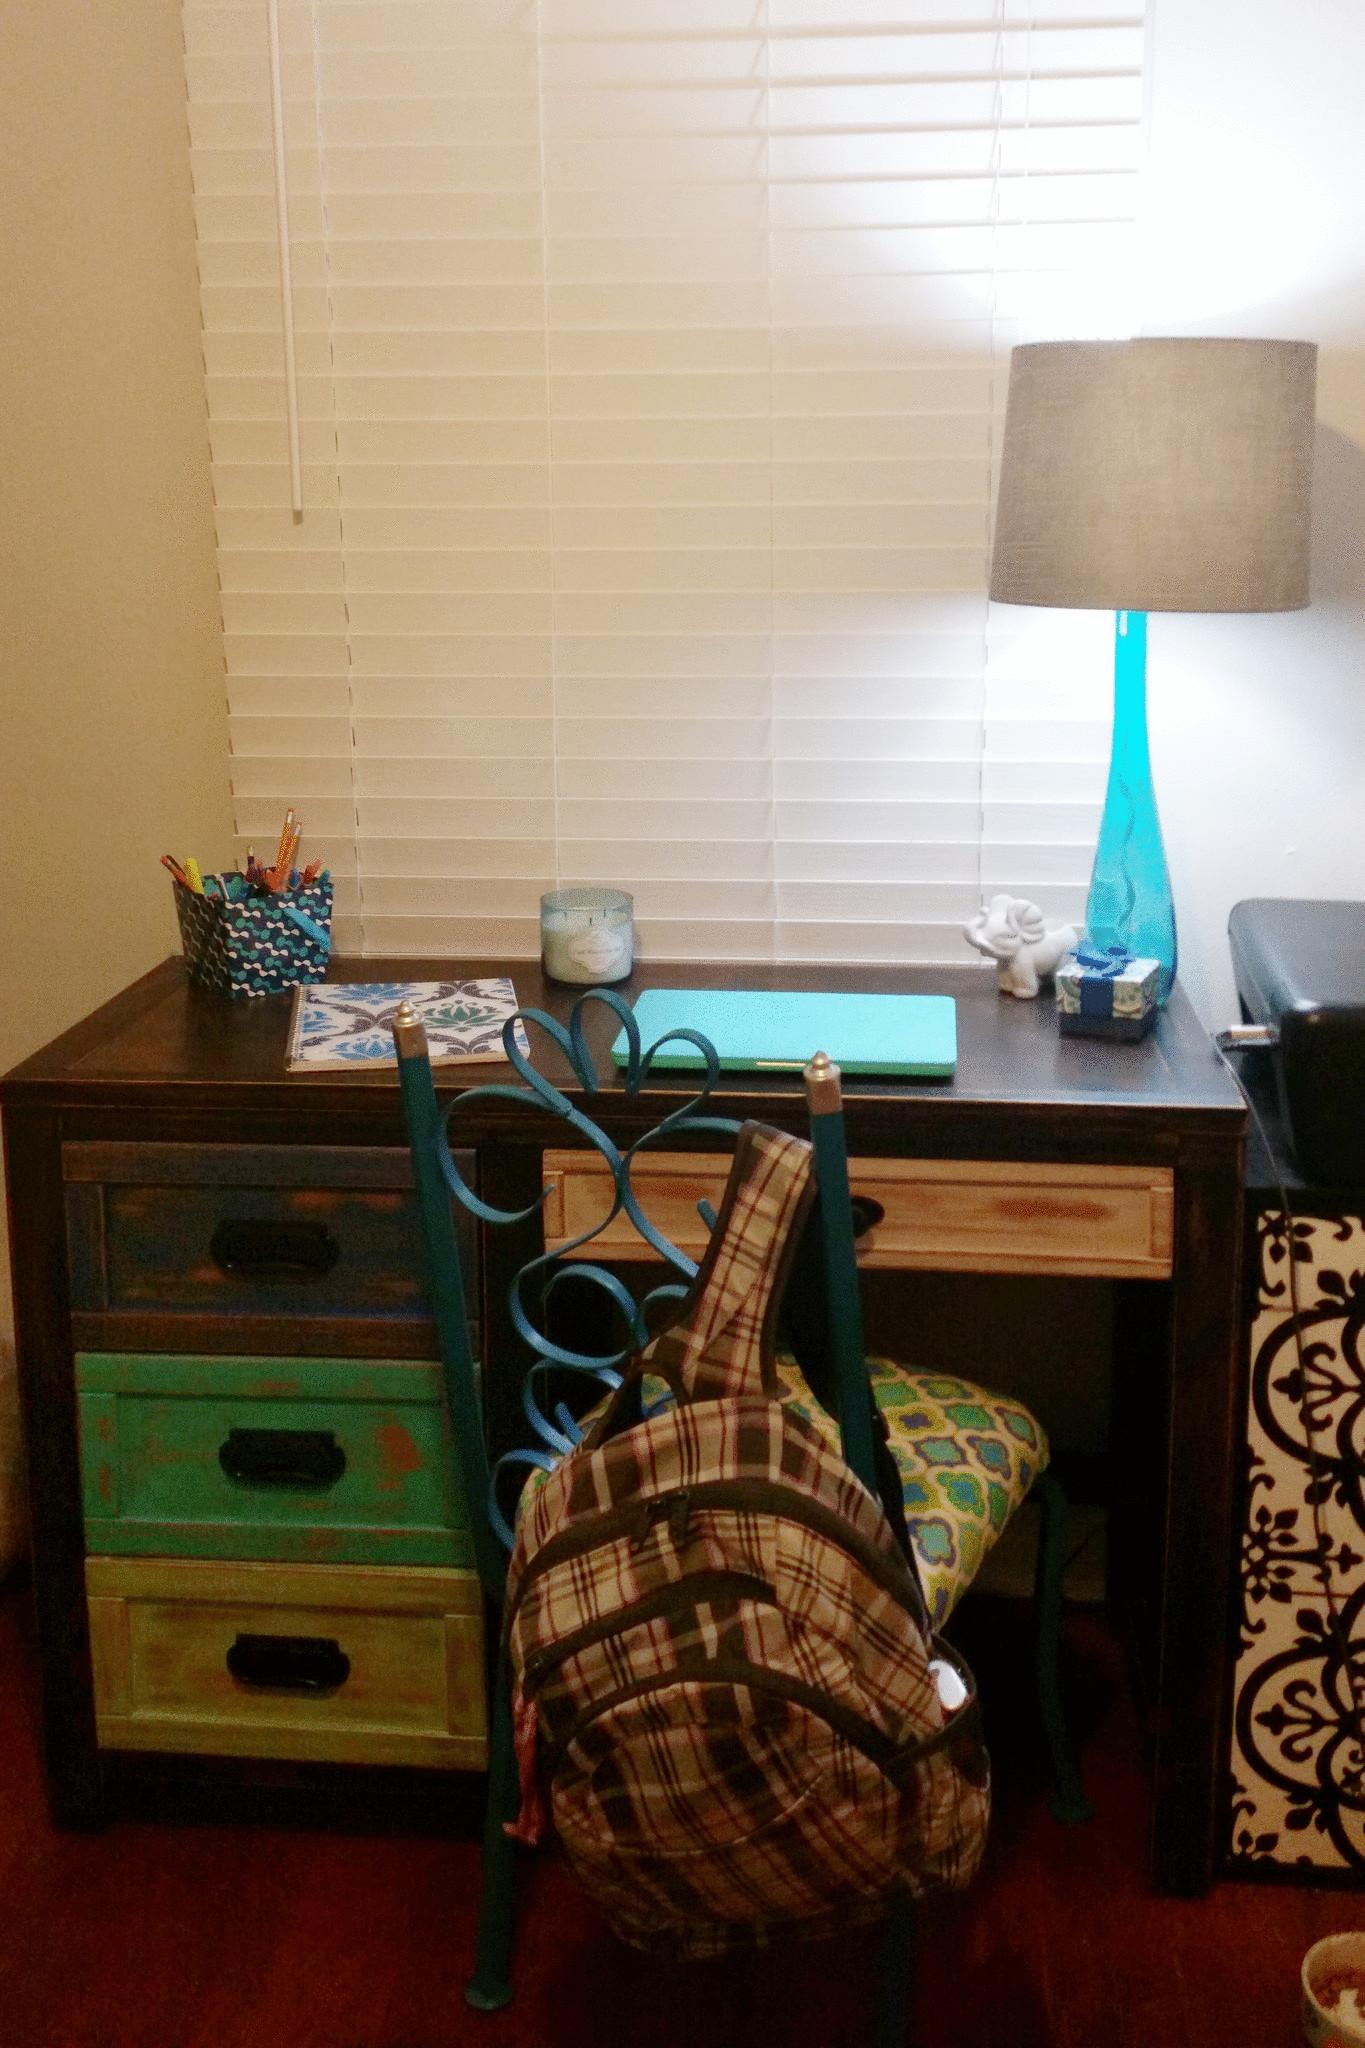 Diy Bottle Lamp Brighten Your Room